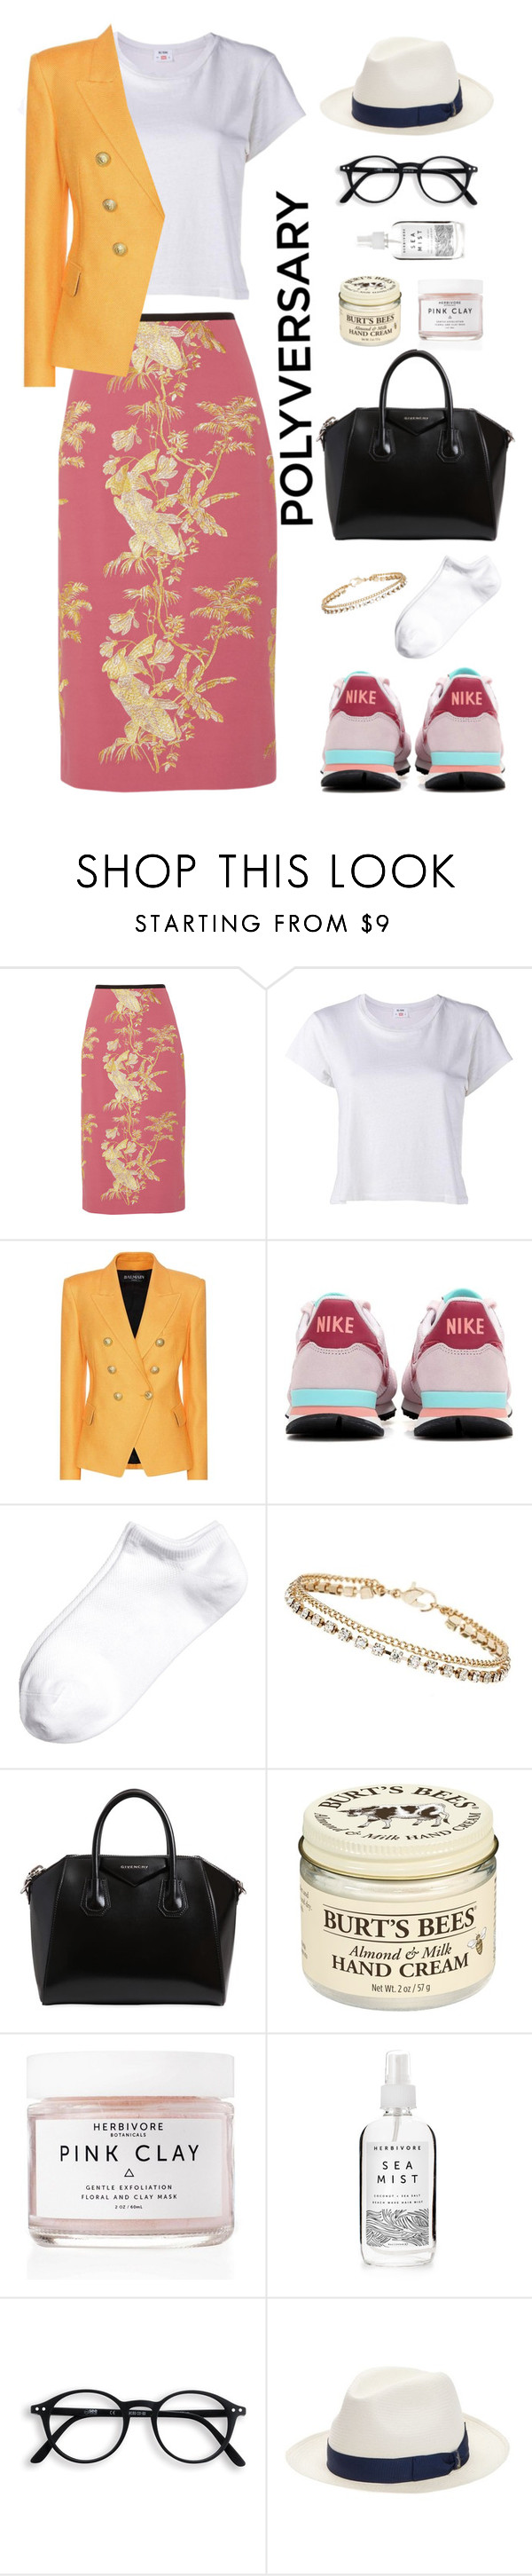 """Celebrate Our 10th Polyversary!"" by kays-fashion-escape ❤ liked on Polyvore featuring Erdem, RE/DONE, Balmain, NIKE, Dorothy Perkins, Givenchy, Burt's Bees, Herbivore, Borsalino and sneakers"